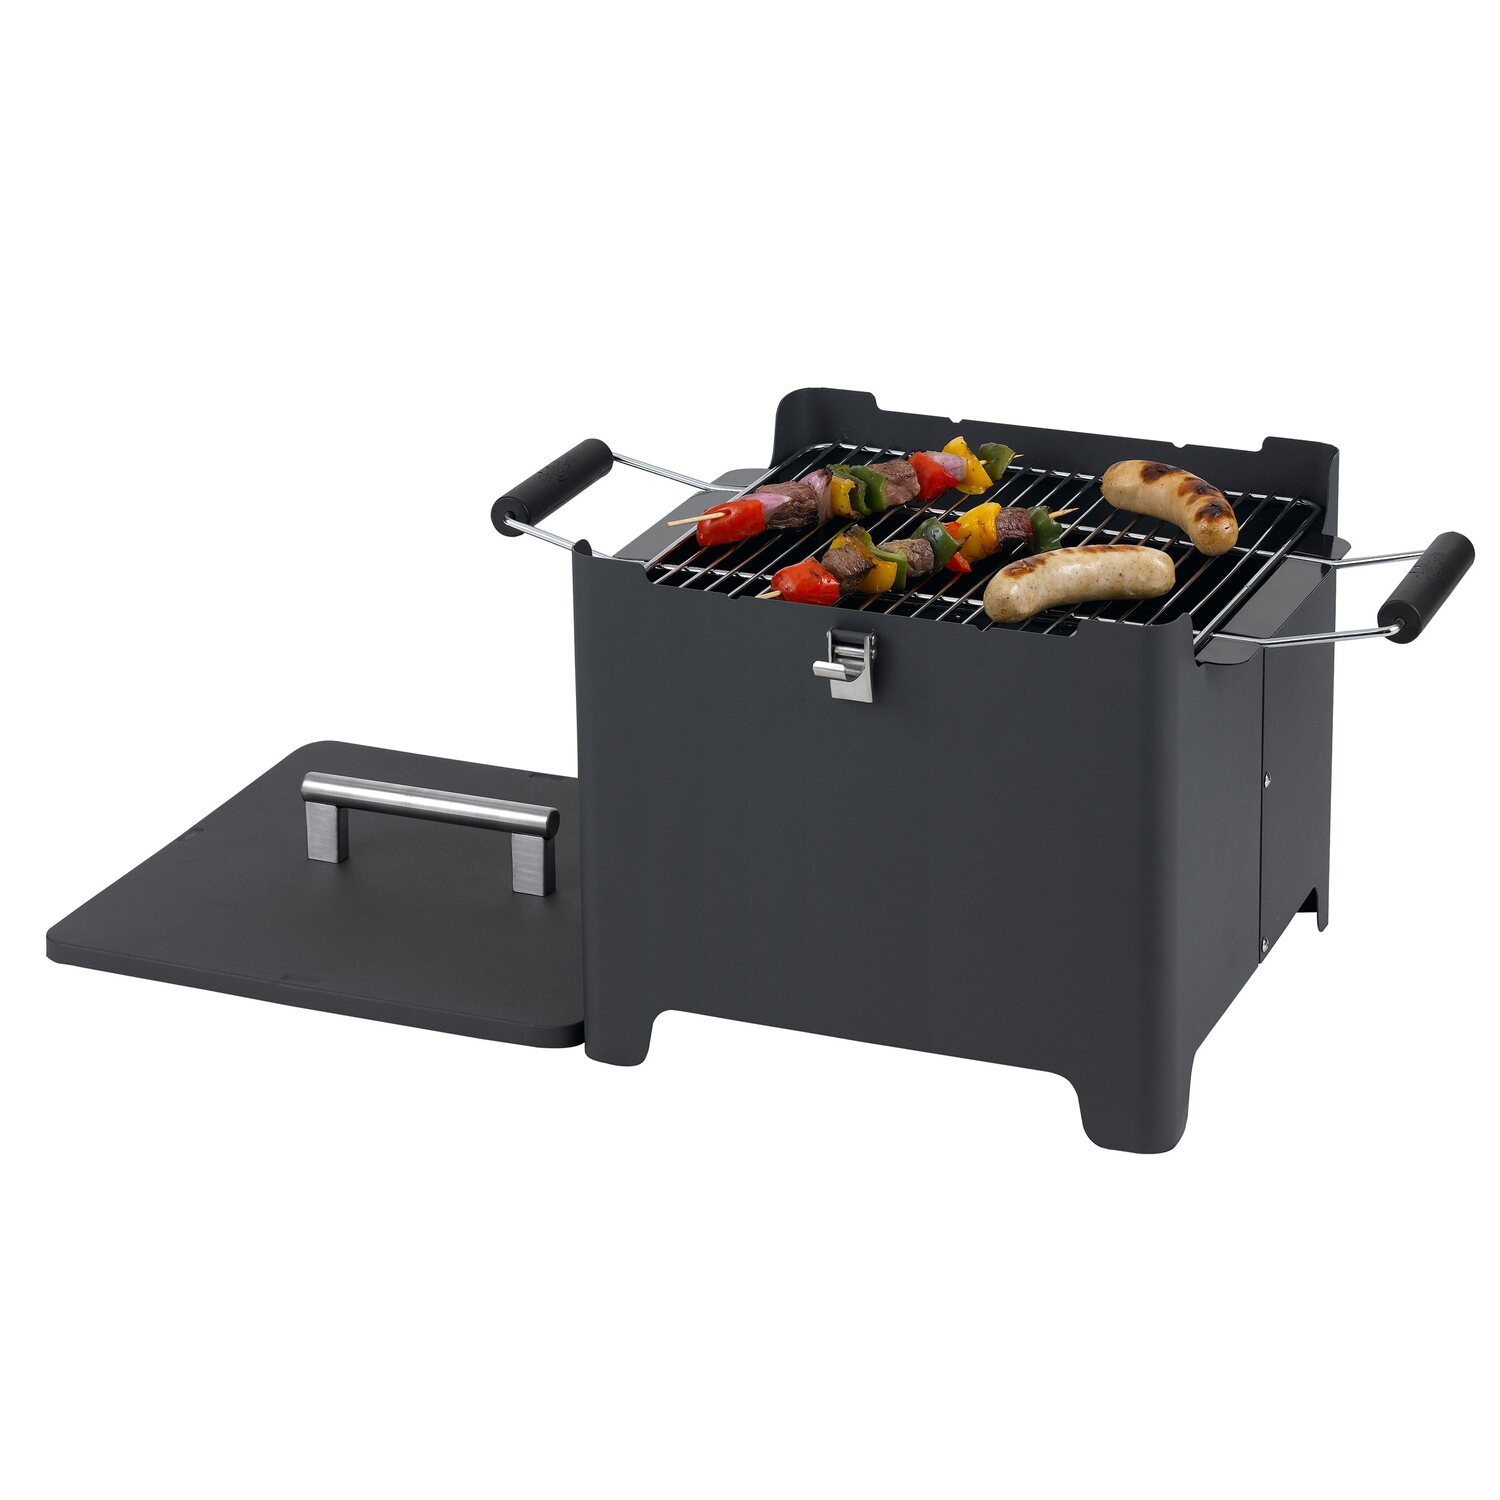 tepro holzkohlegrill chill & grill cube anthrazit 31,5 x 31,5 cm